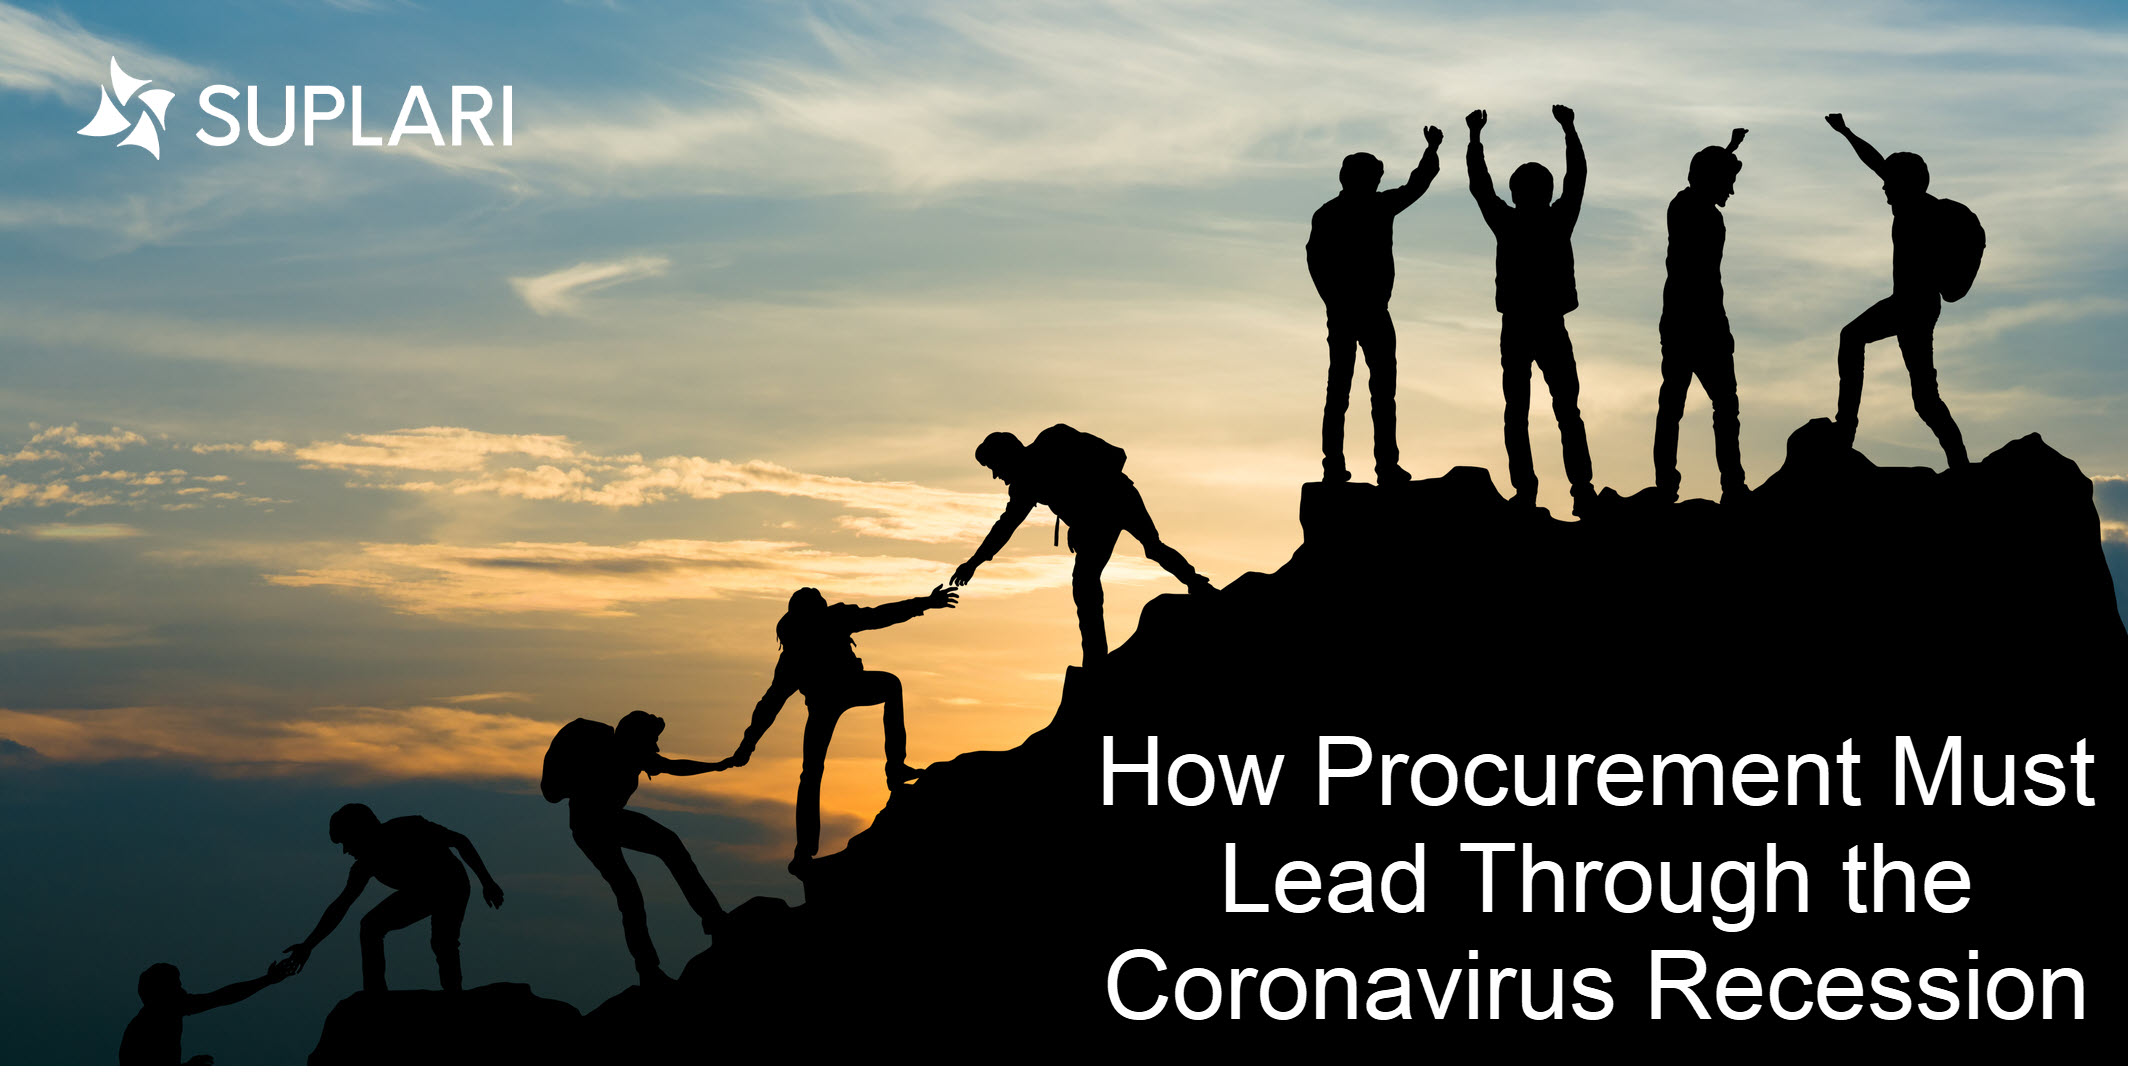 How Procurement Must Lead Through the Coronavirus Recession